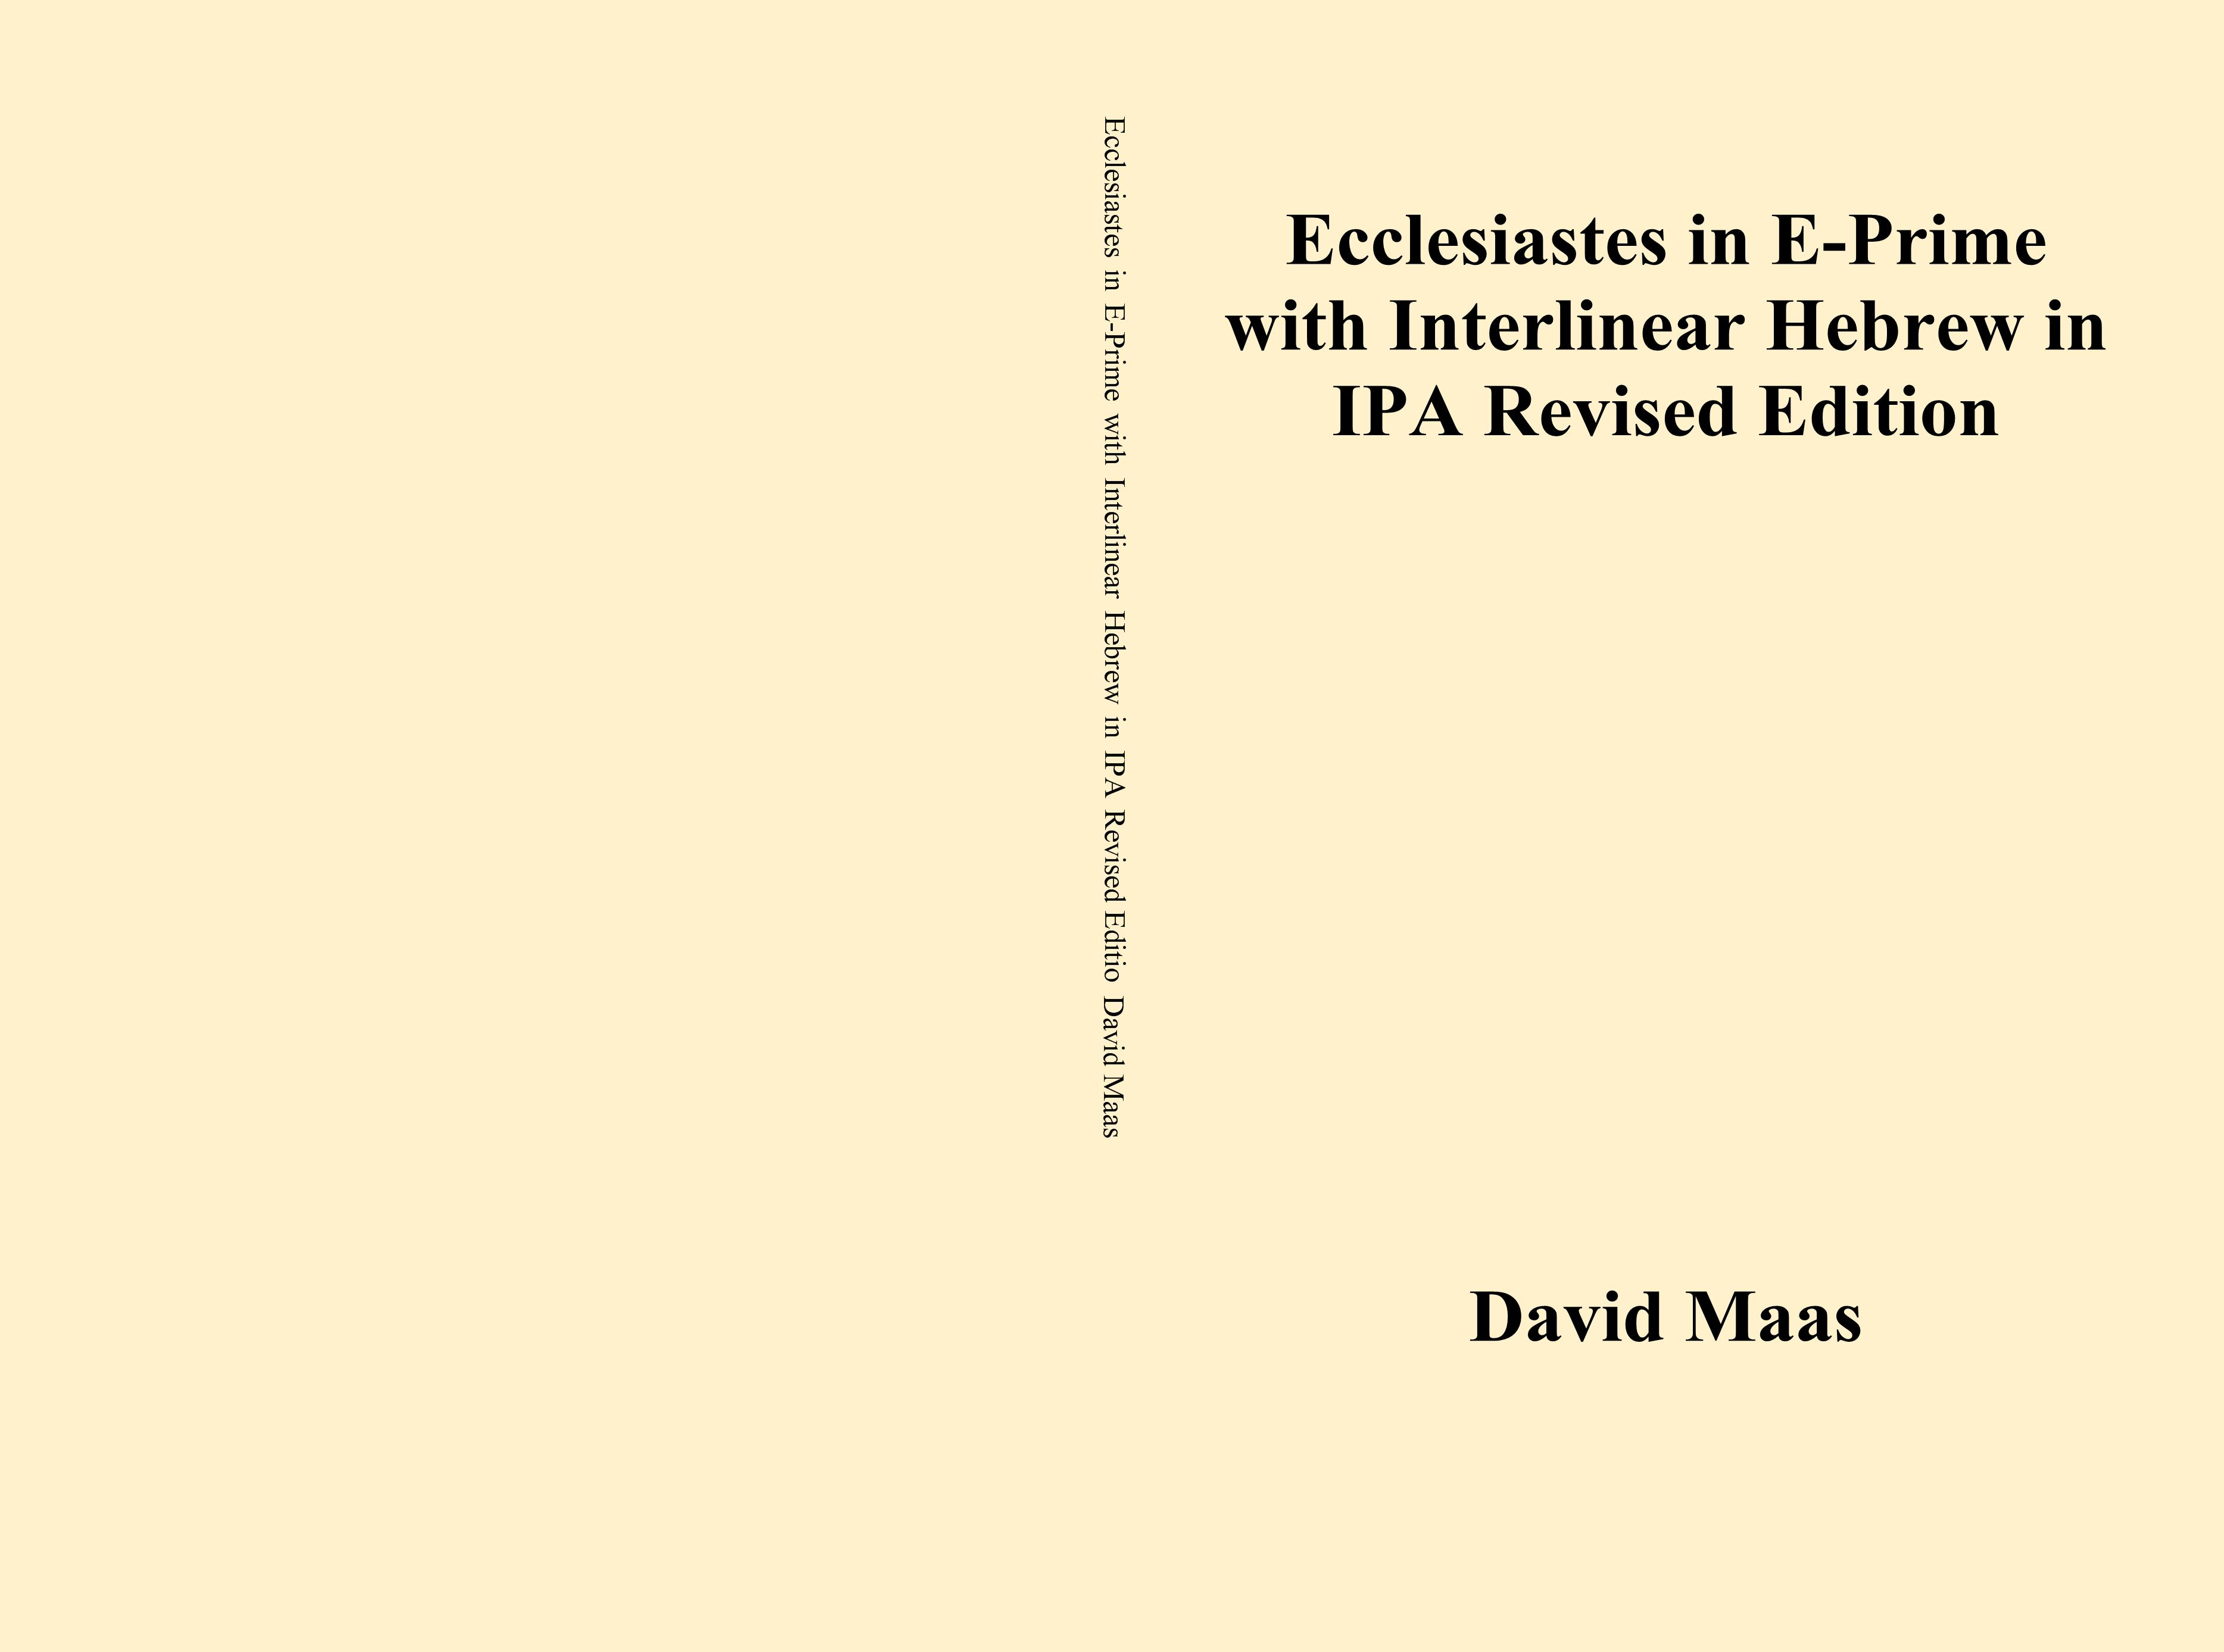 Ecclesiastes in E-Prime with Interlinear Hebrew in IPA Revised Edition cover image